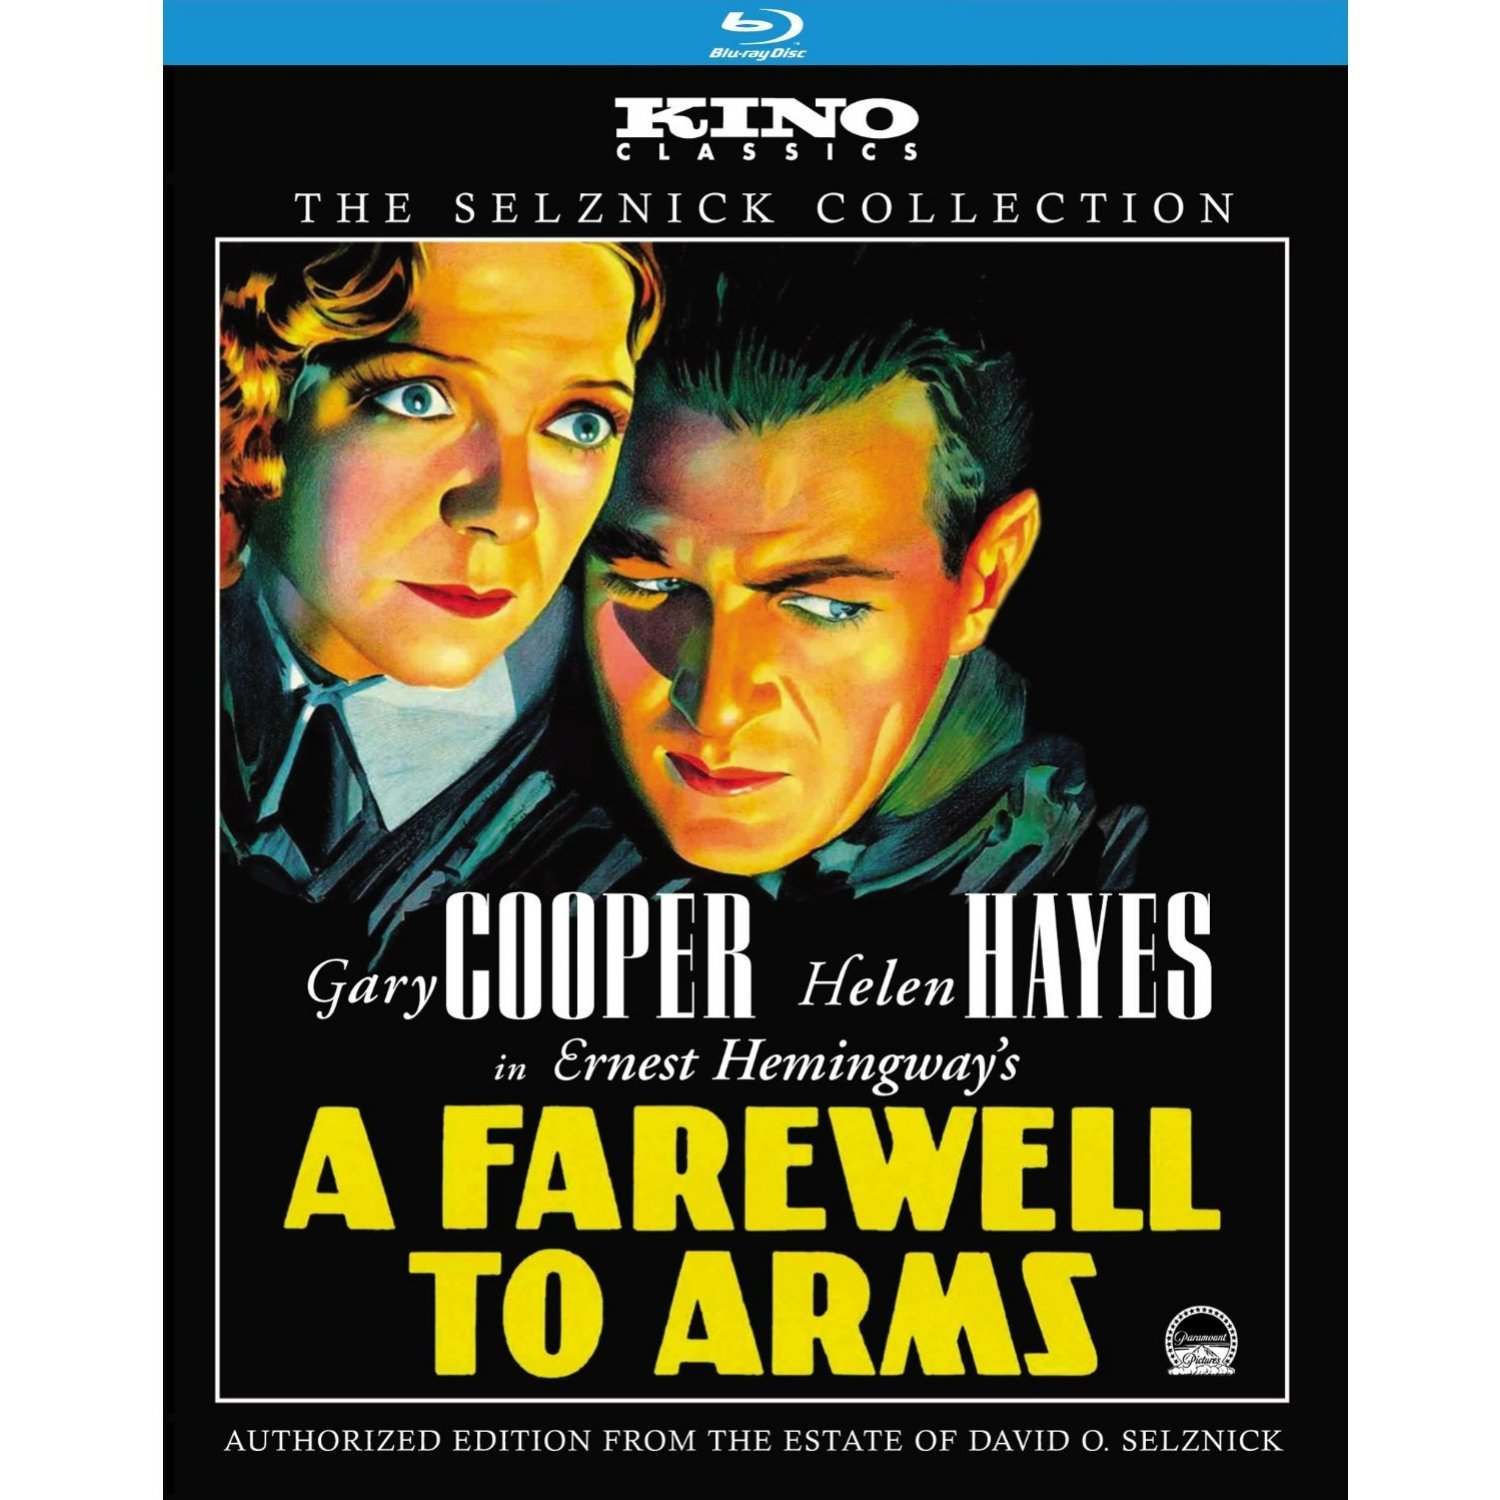 frederick henry as hemingways code hero in the novel a farewell to arms This relationship proved the model for frederic and catherine's tragic romance in a farewell to arms hemingway's third novel, a farewell to arms henry meets.